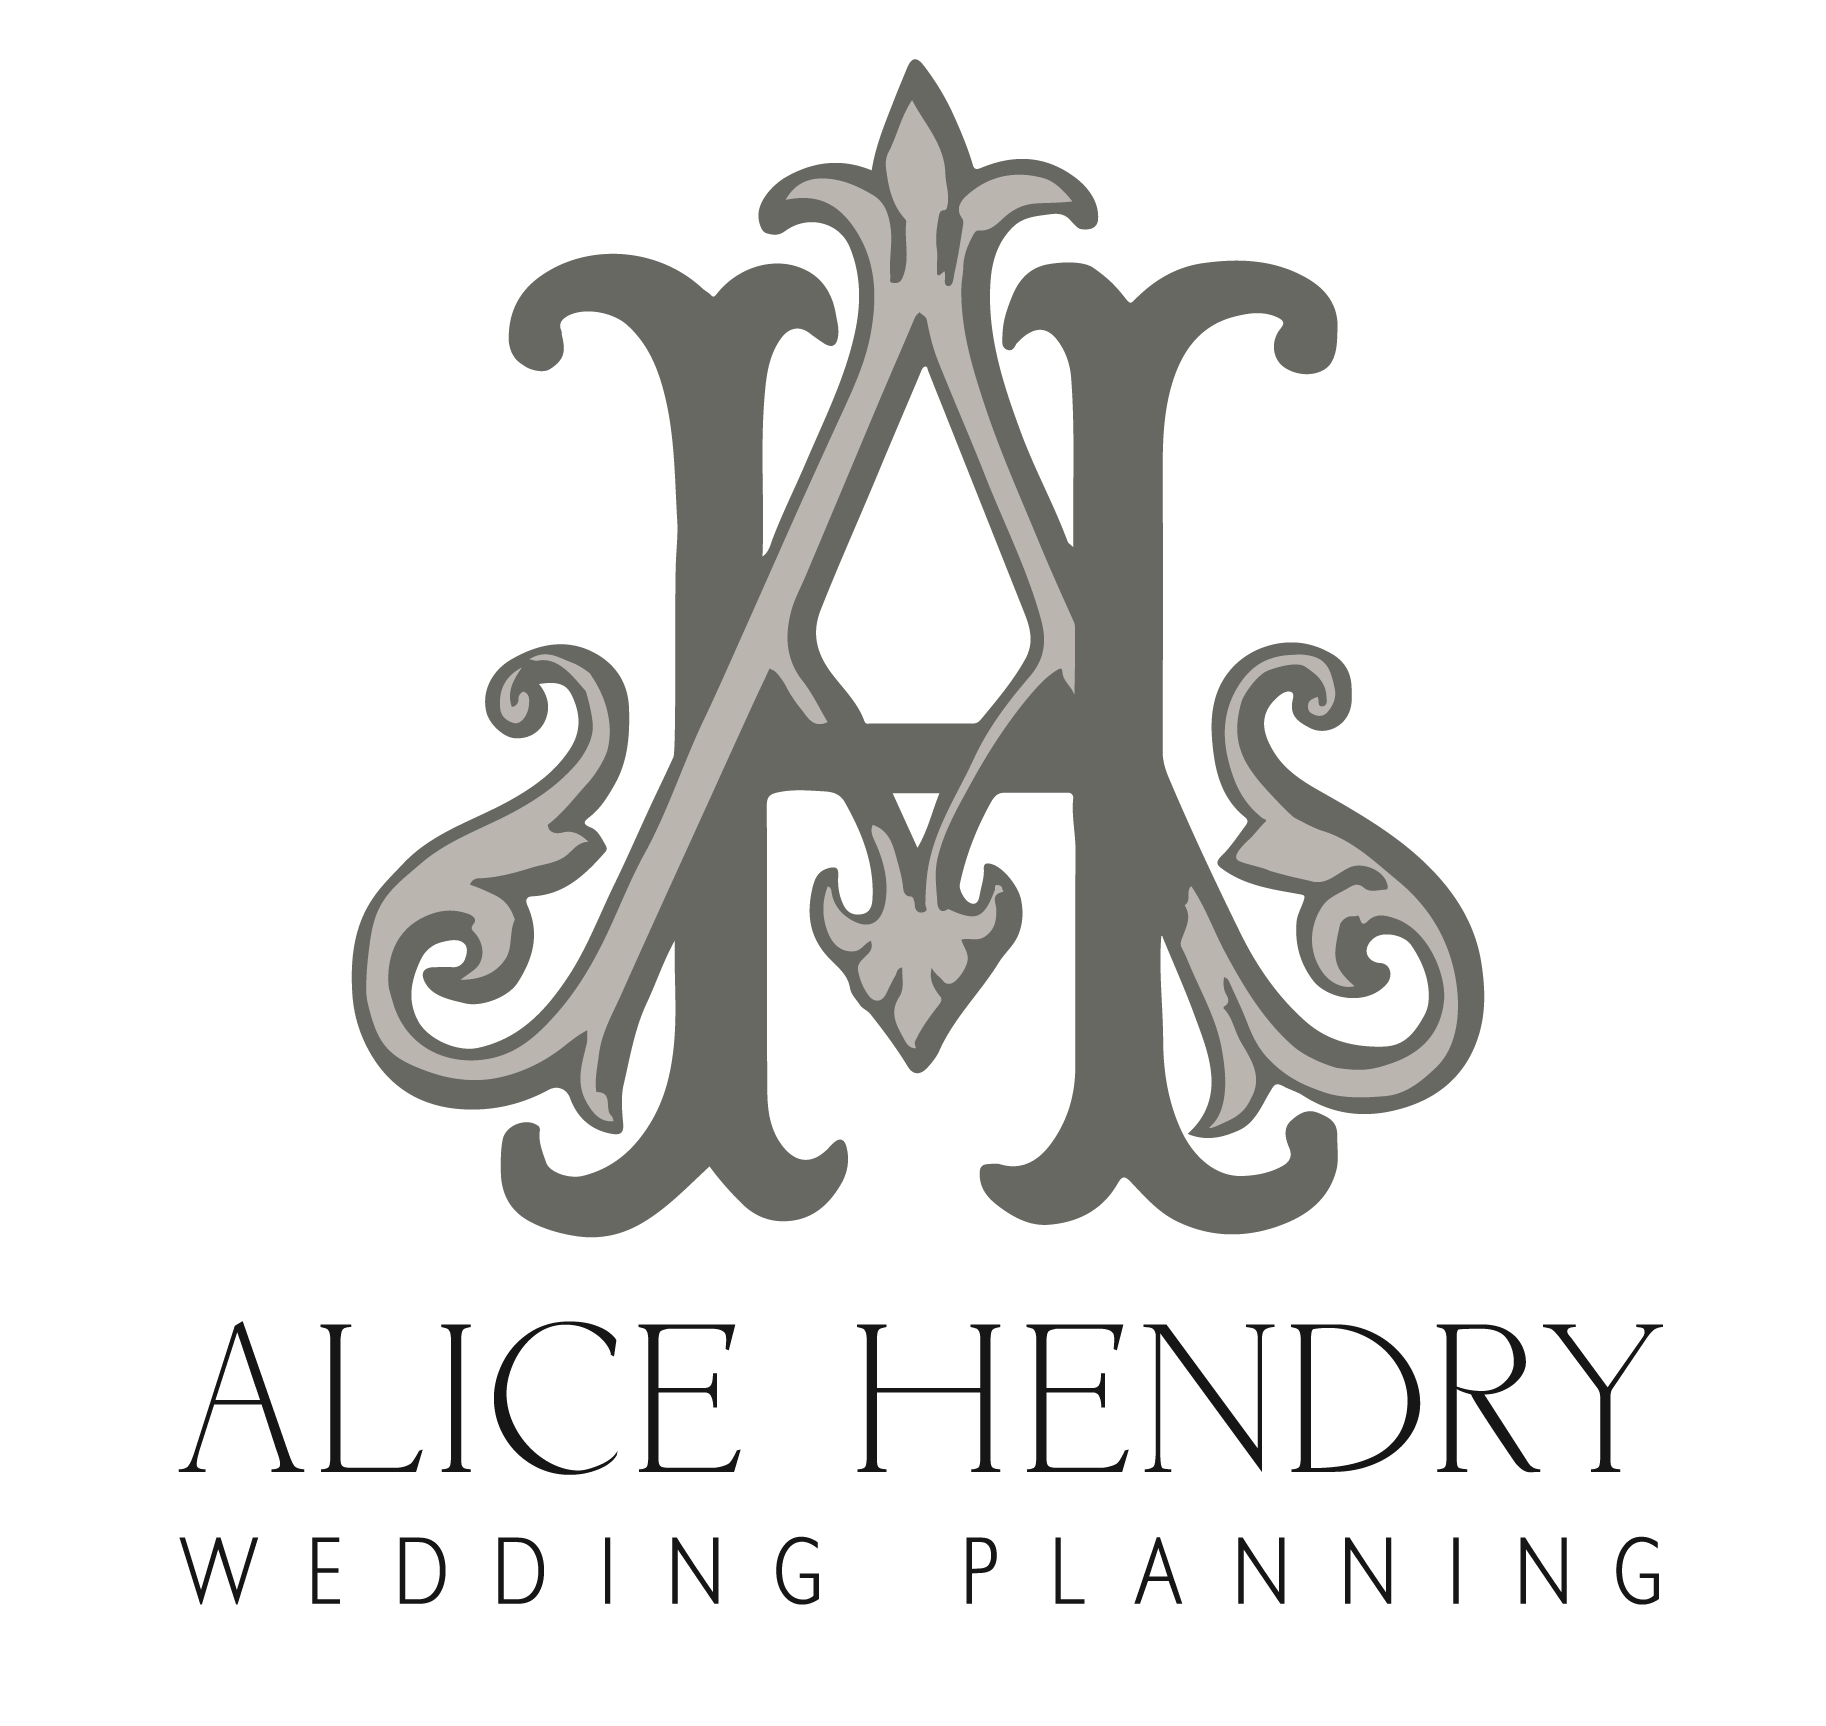 AliceHendryVertLogo-03.png